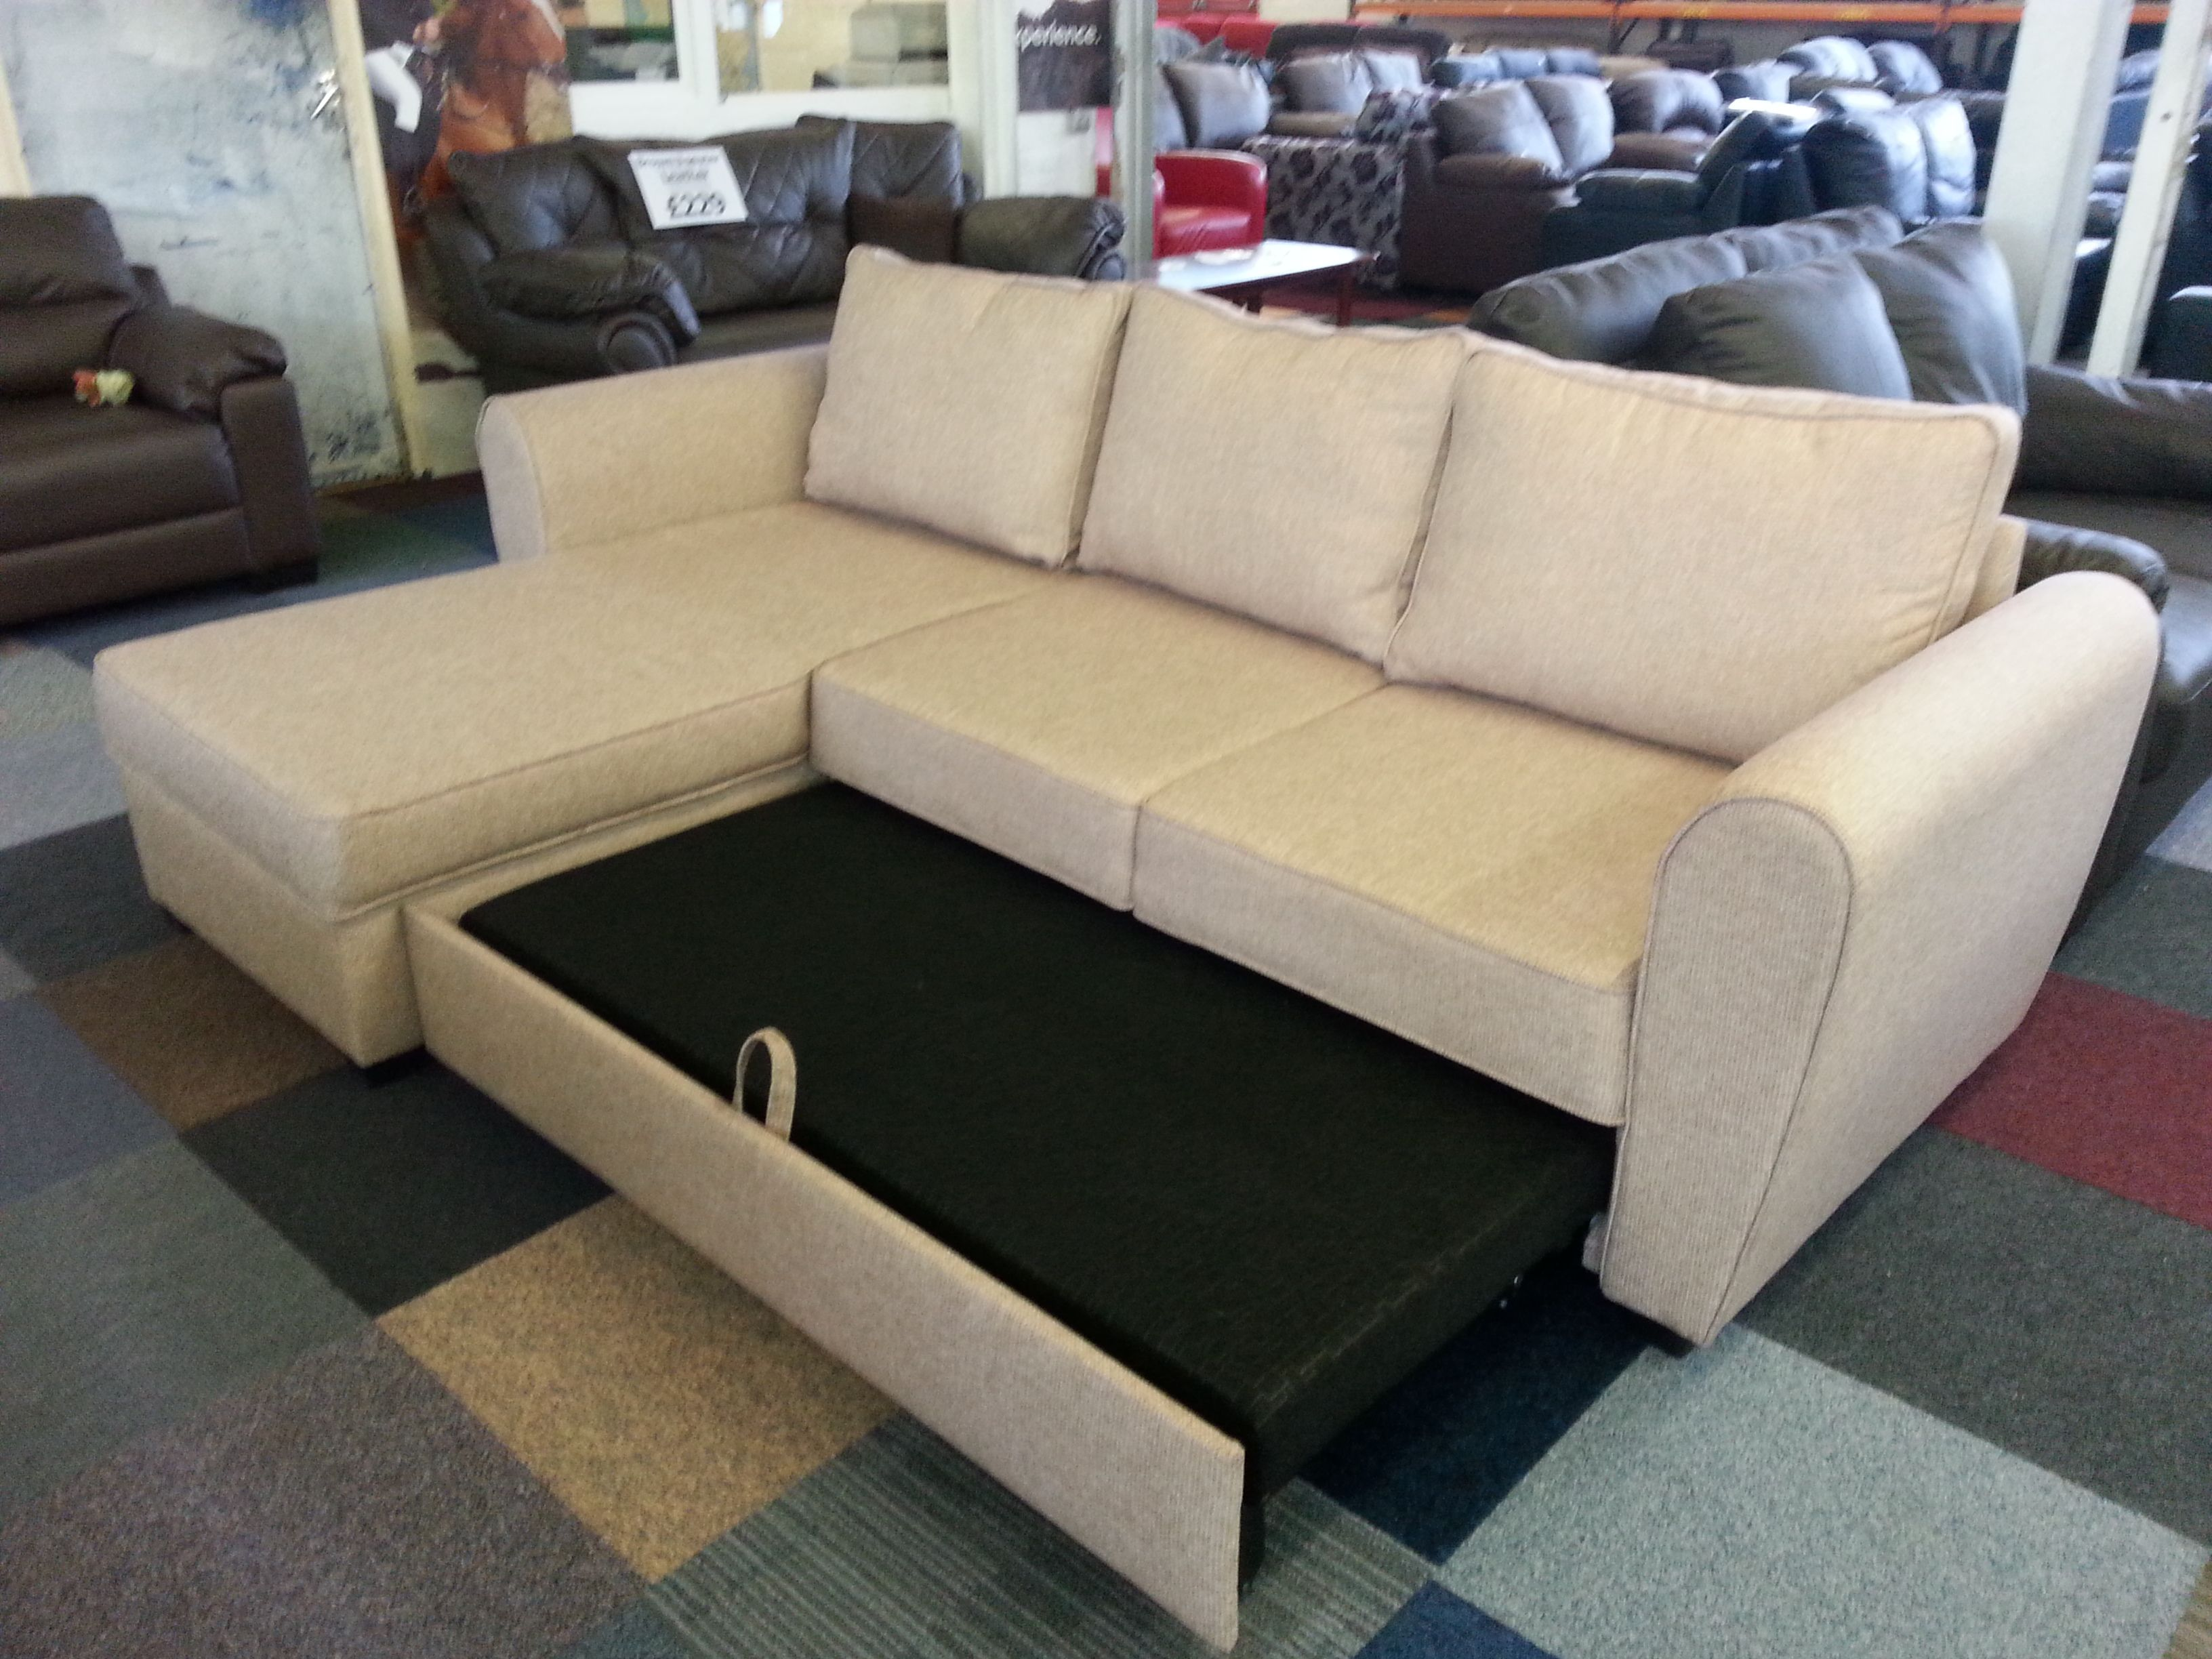 Siena Corner Group Sofa Bed with Storage - Wheat | Live - In ...